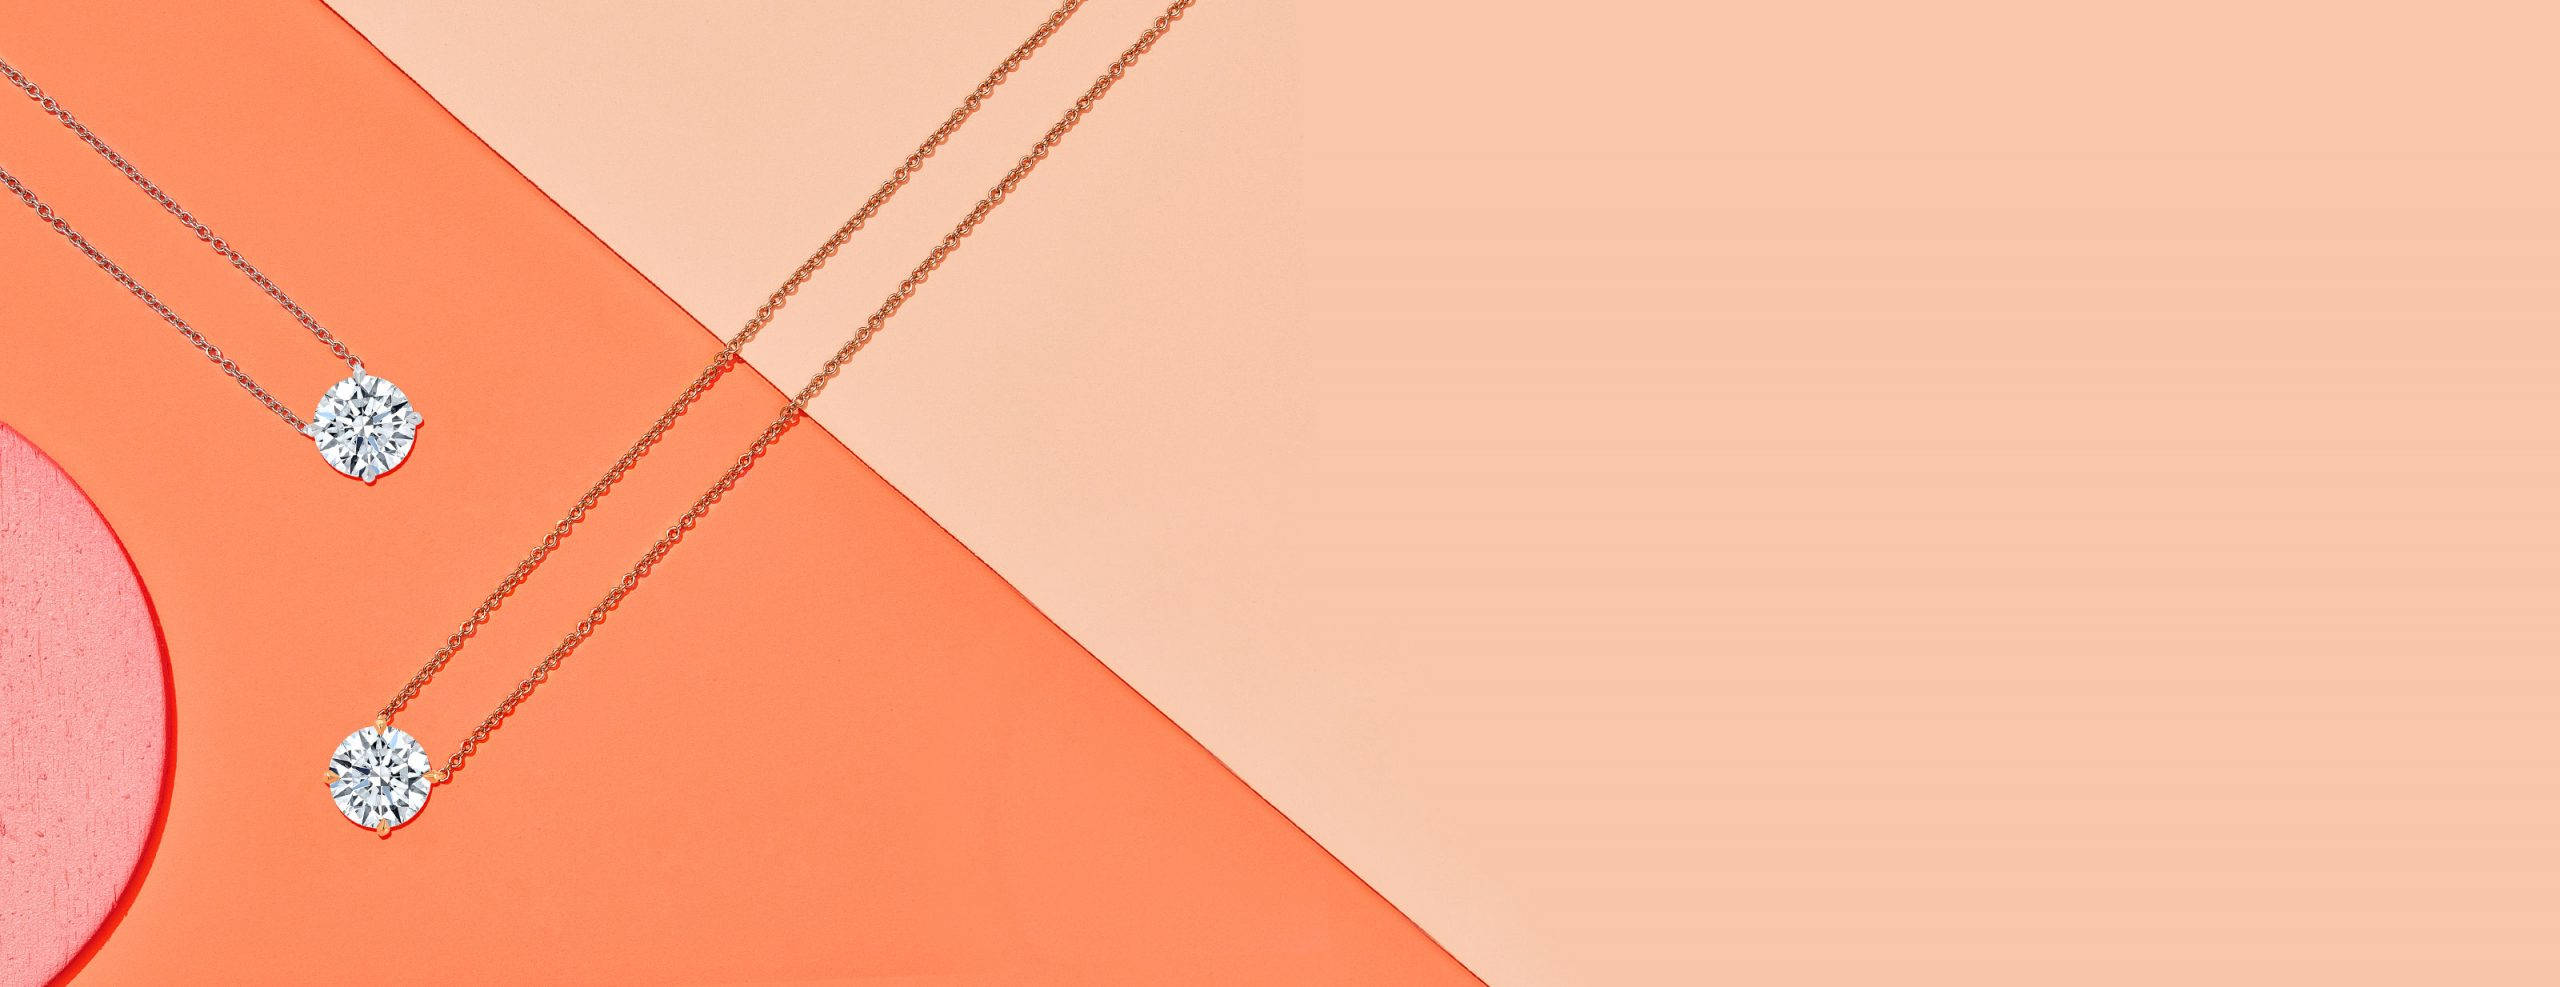 Two Lab Grown Diamond Necklaces Product Layout